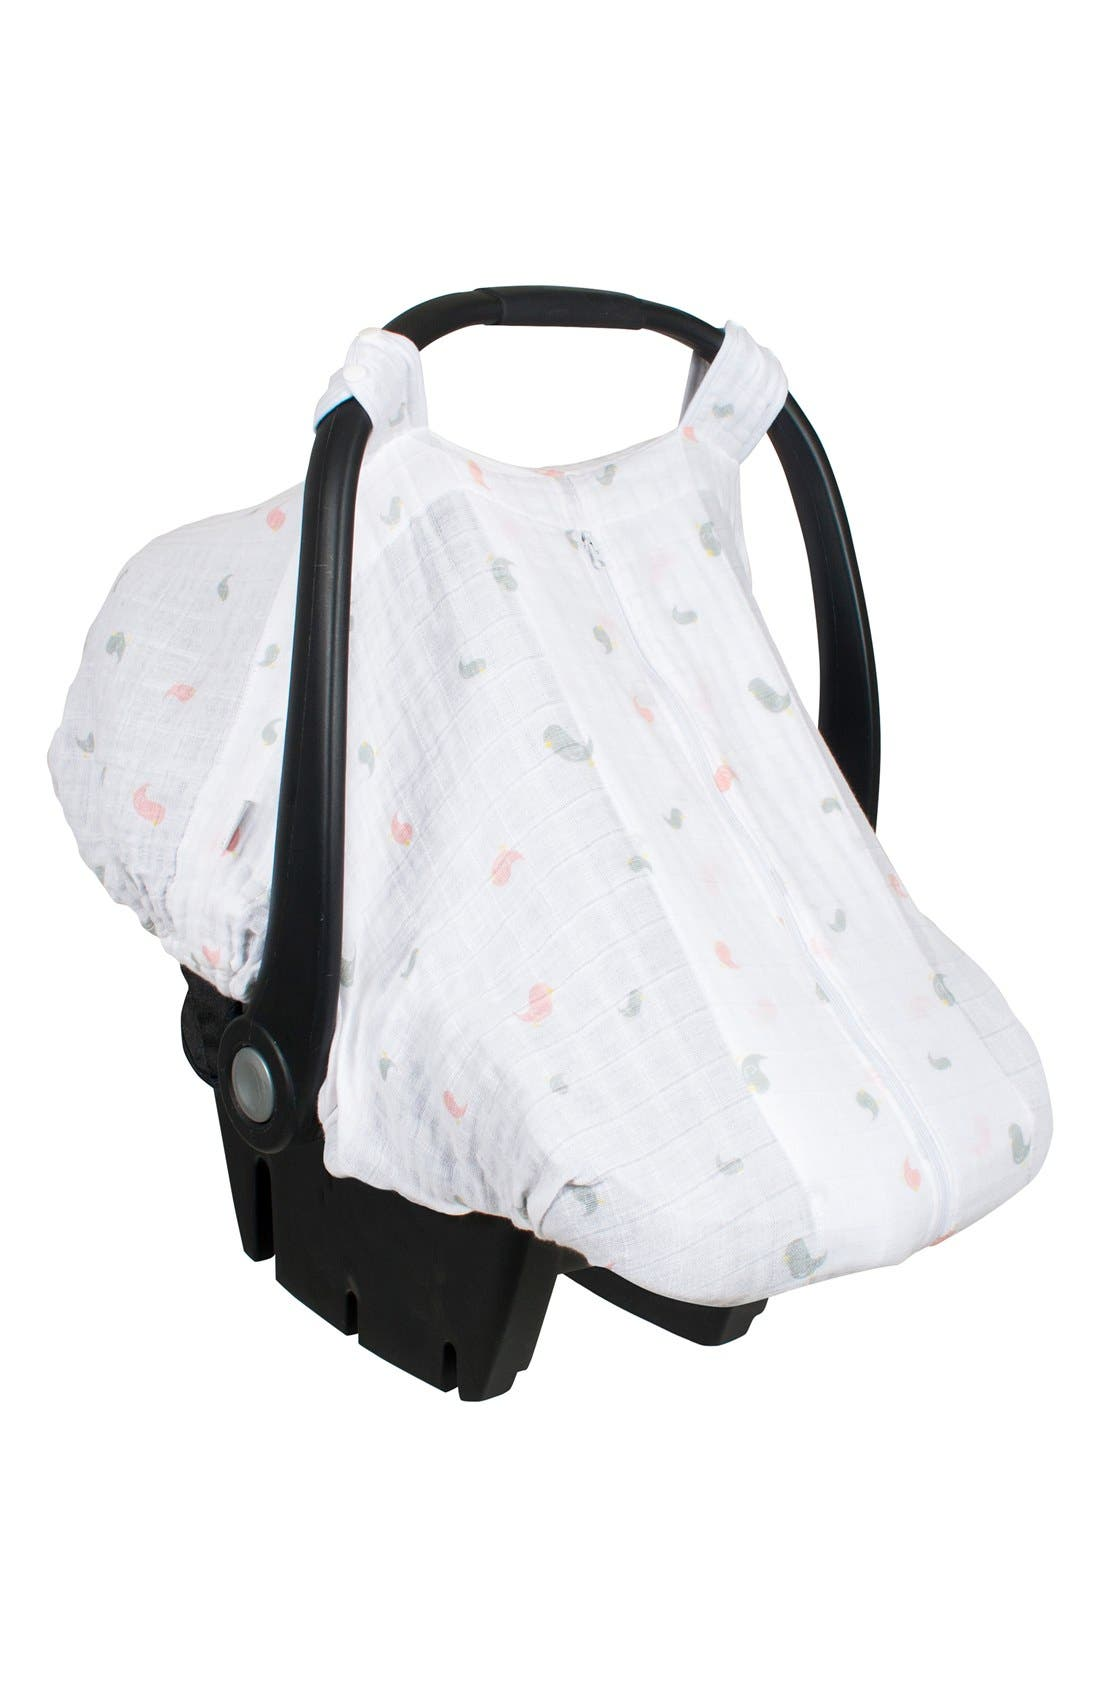 Muslin Car Seat Cover,                         Main,                         color, White/ Pink